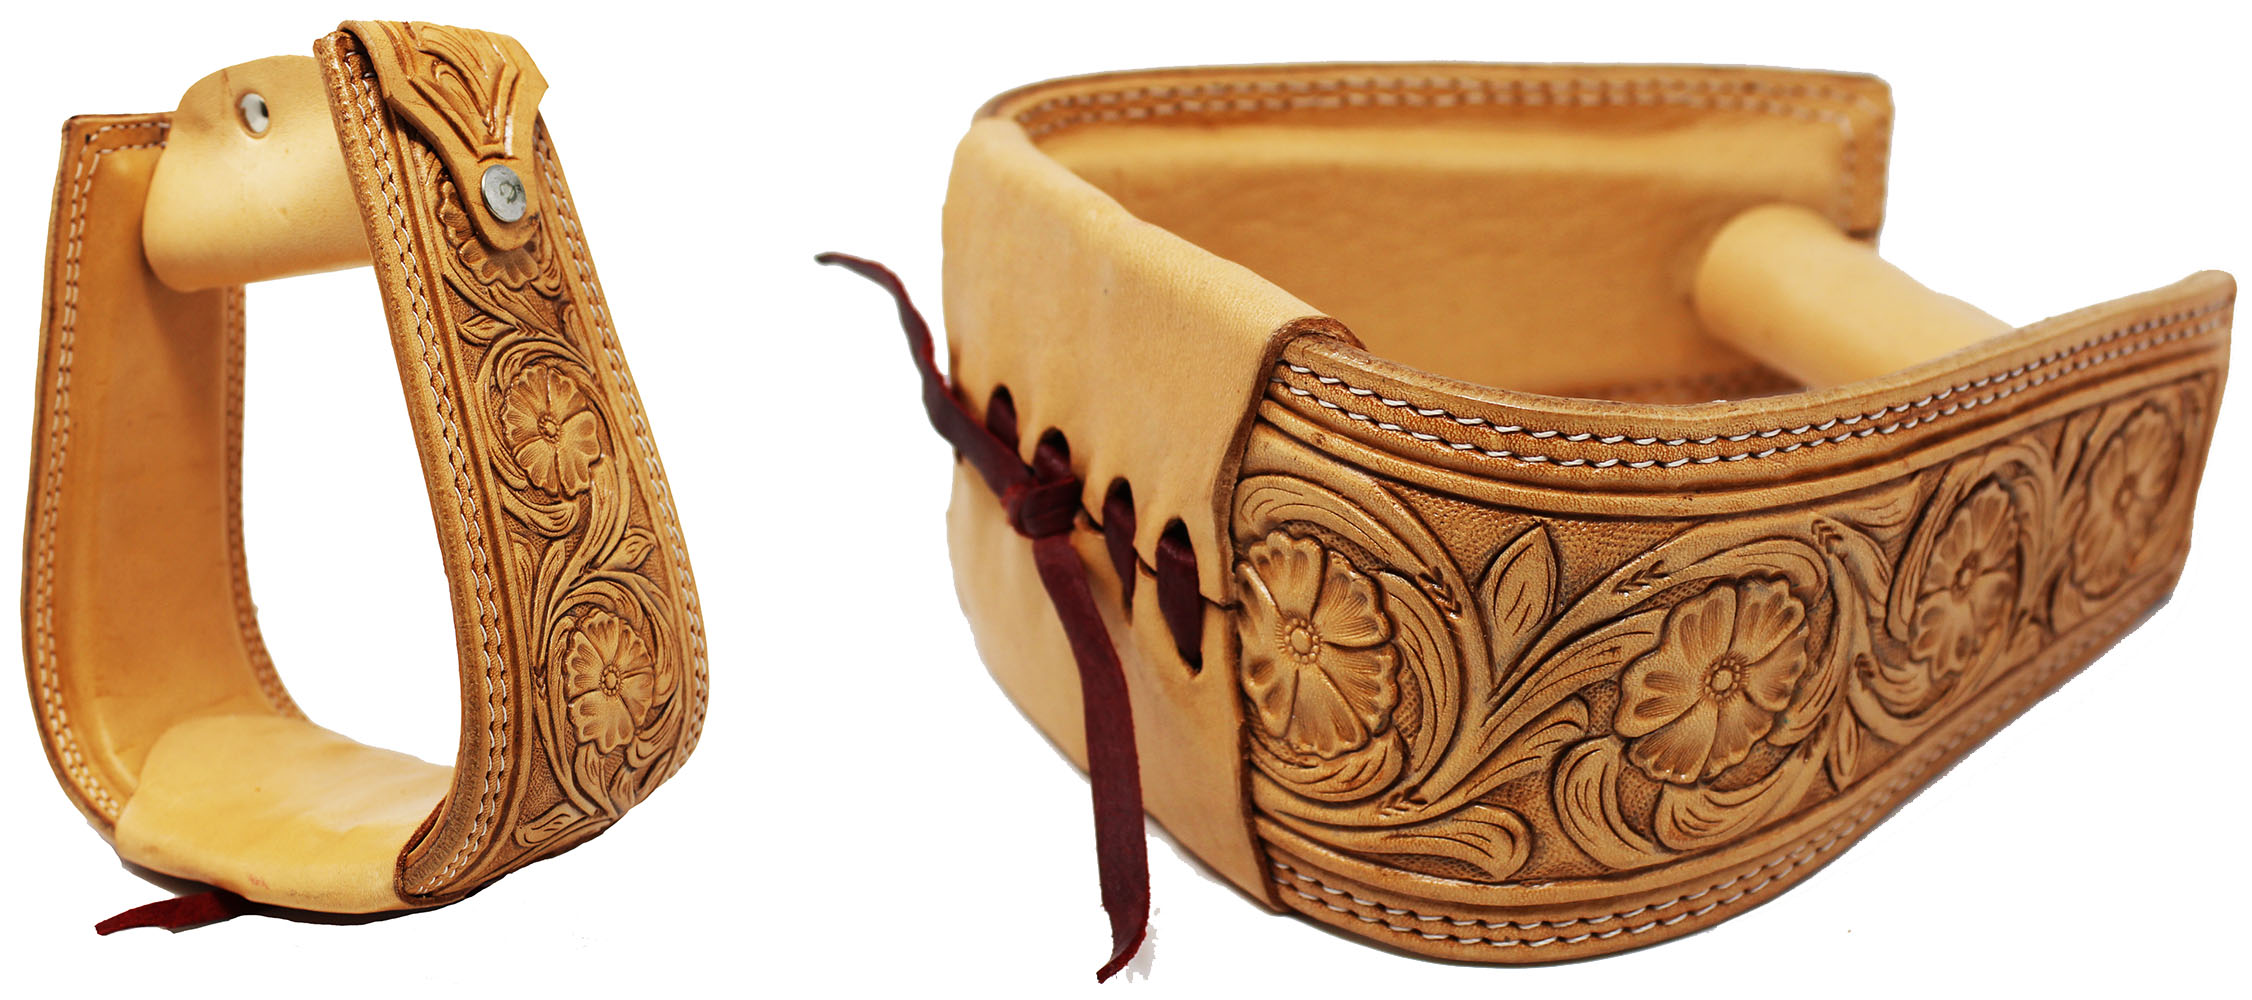 Details about Horse Western Saddle Tack Floral Hand Tooled Leather Covered  Stirrups 51173TN